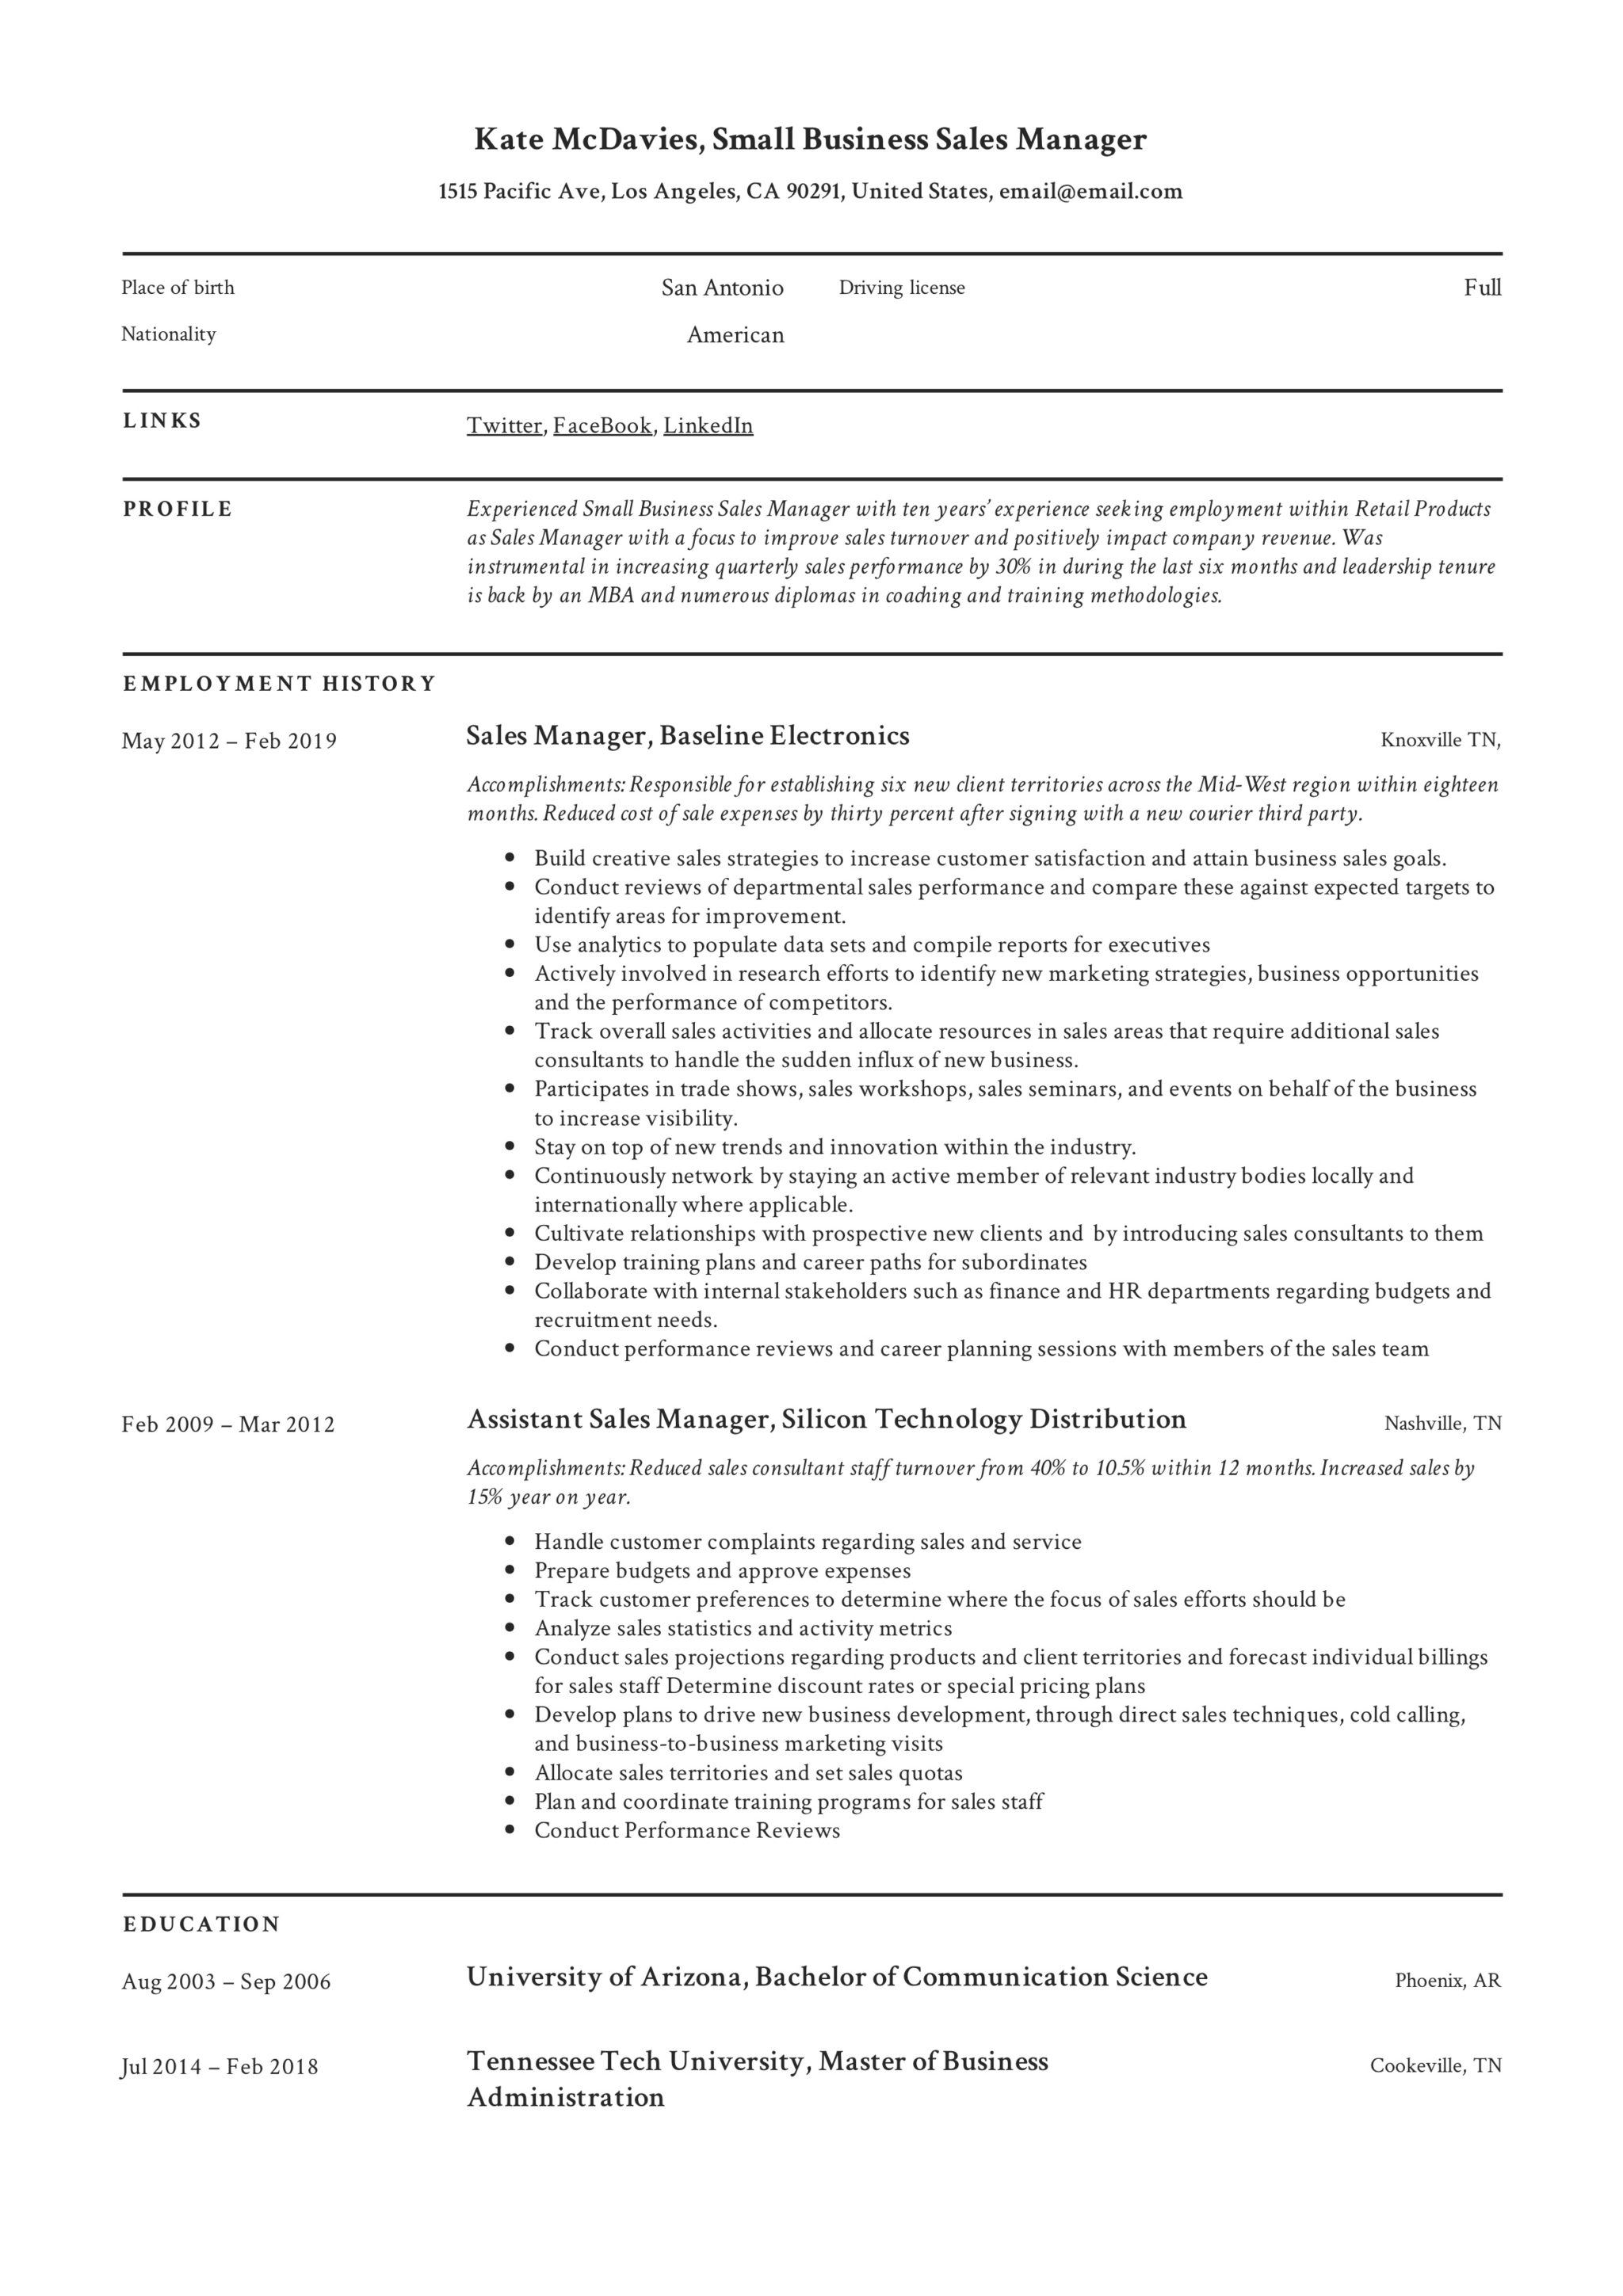 Small Business Sales Manager Resume Example (2)